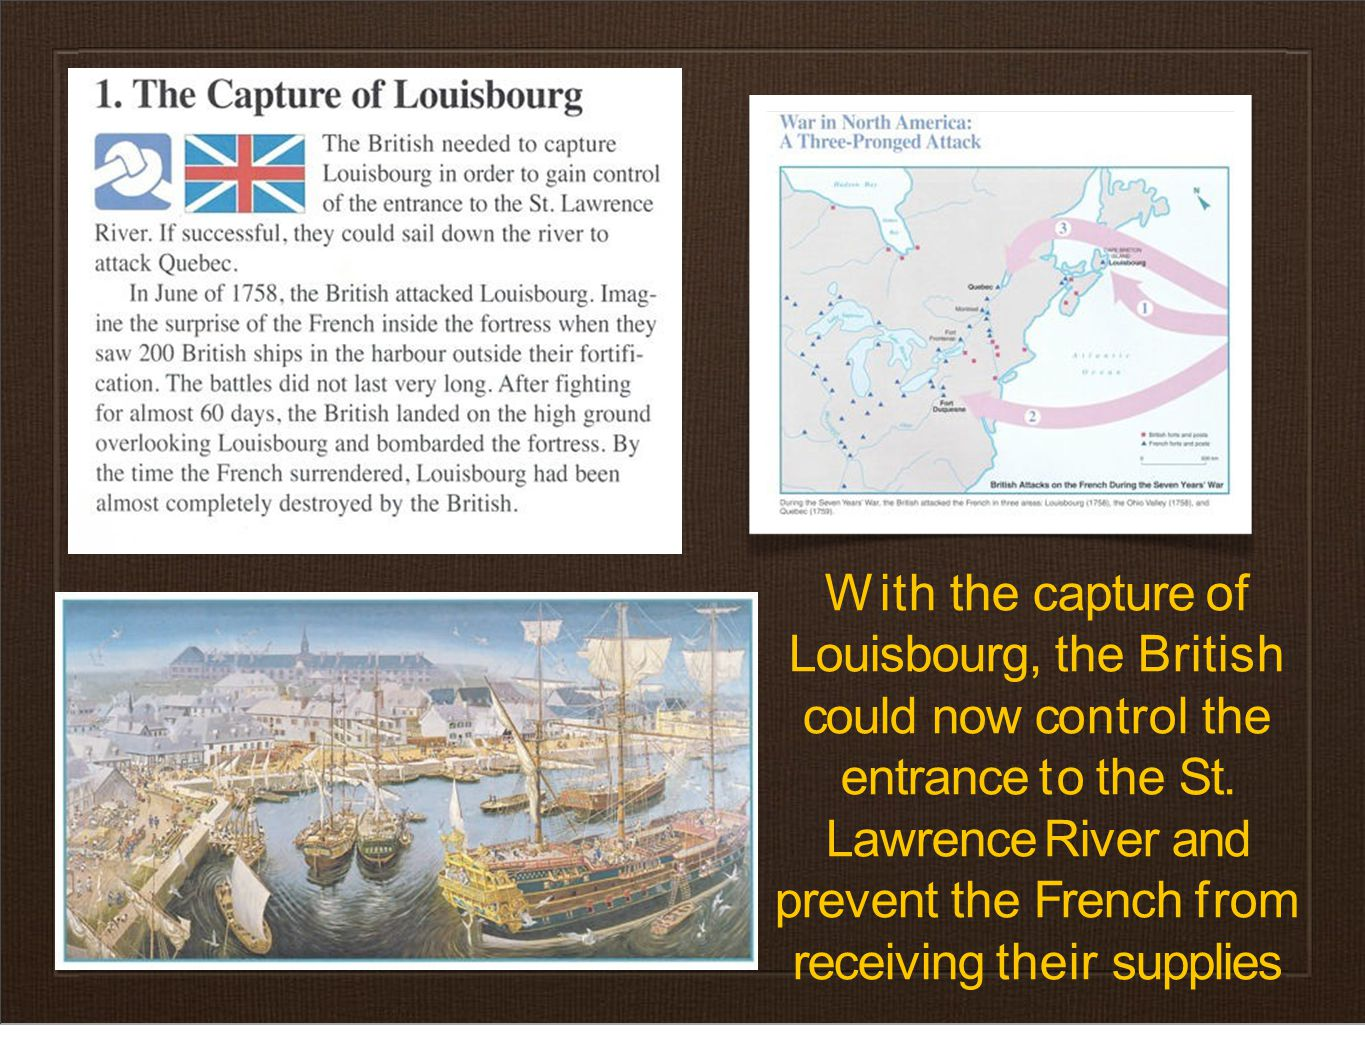 With the capture of Louisbourg, the British could now control the entrance to the St. Lawrence River and prevent the French from receiving their suppl